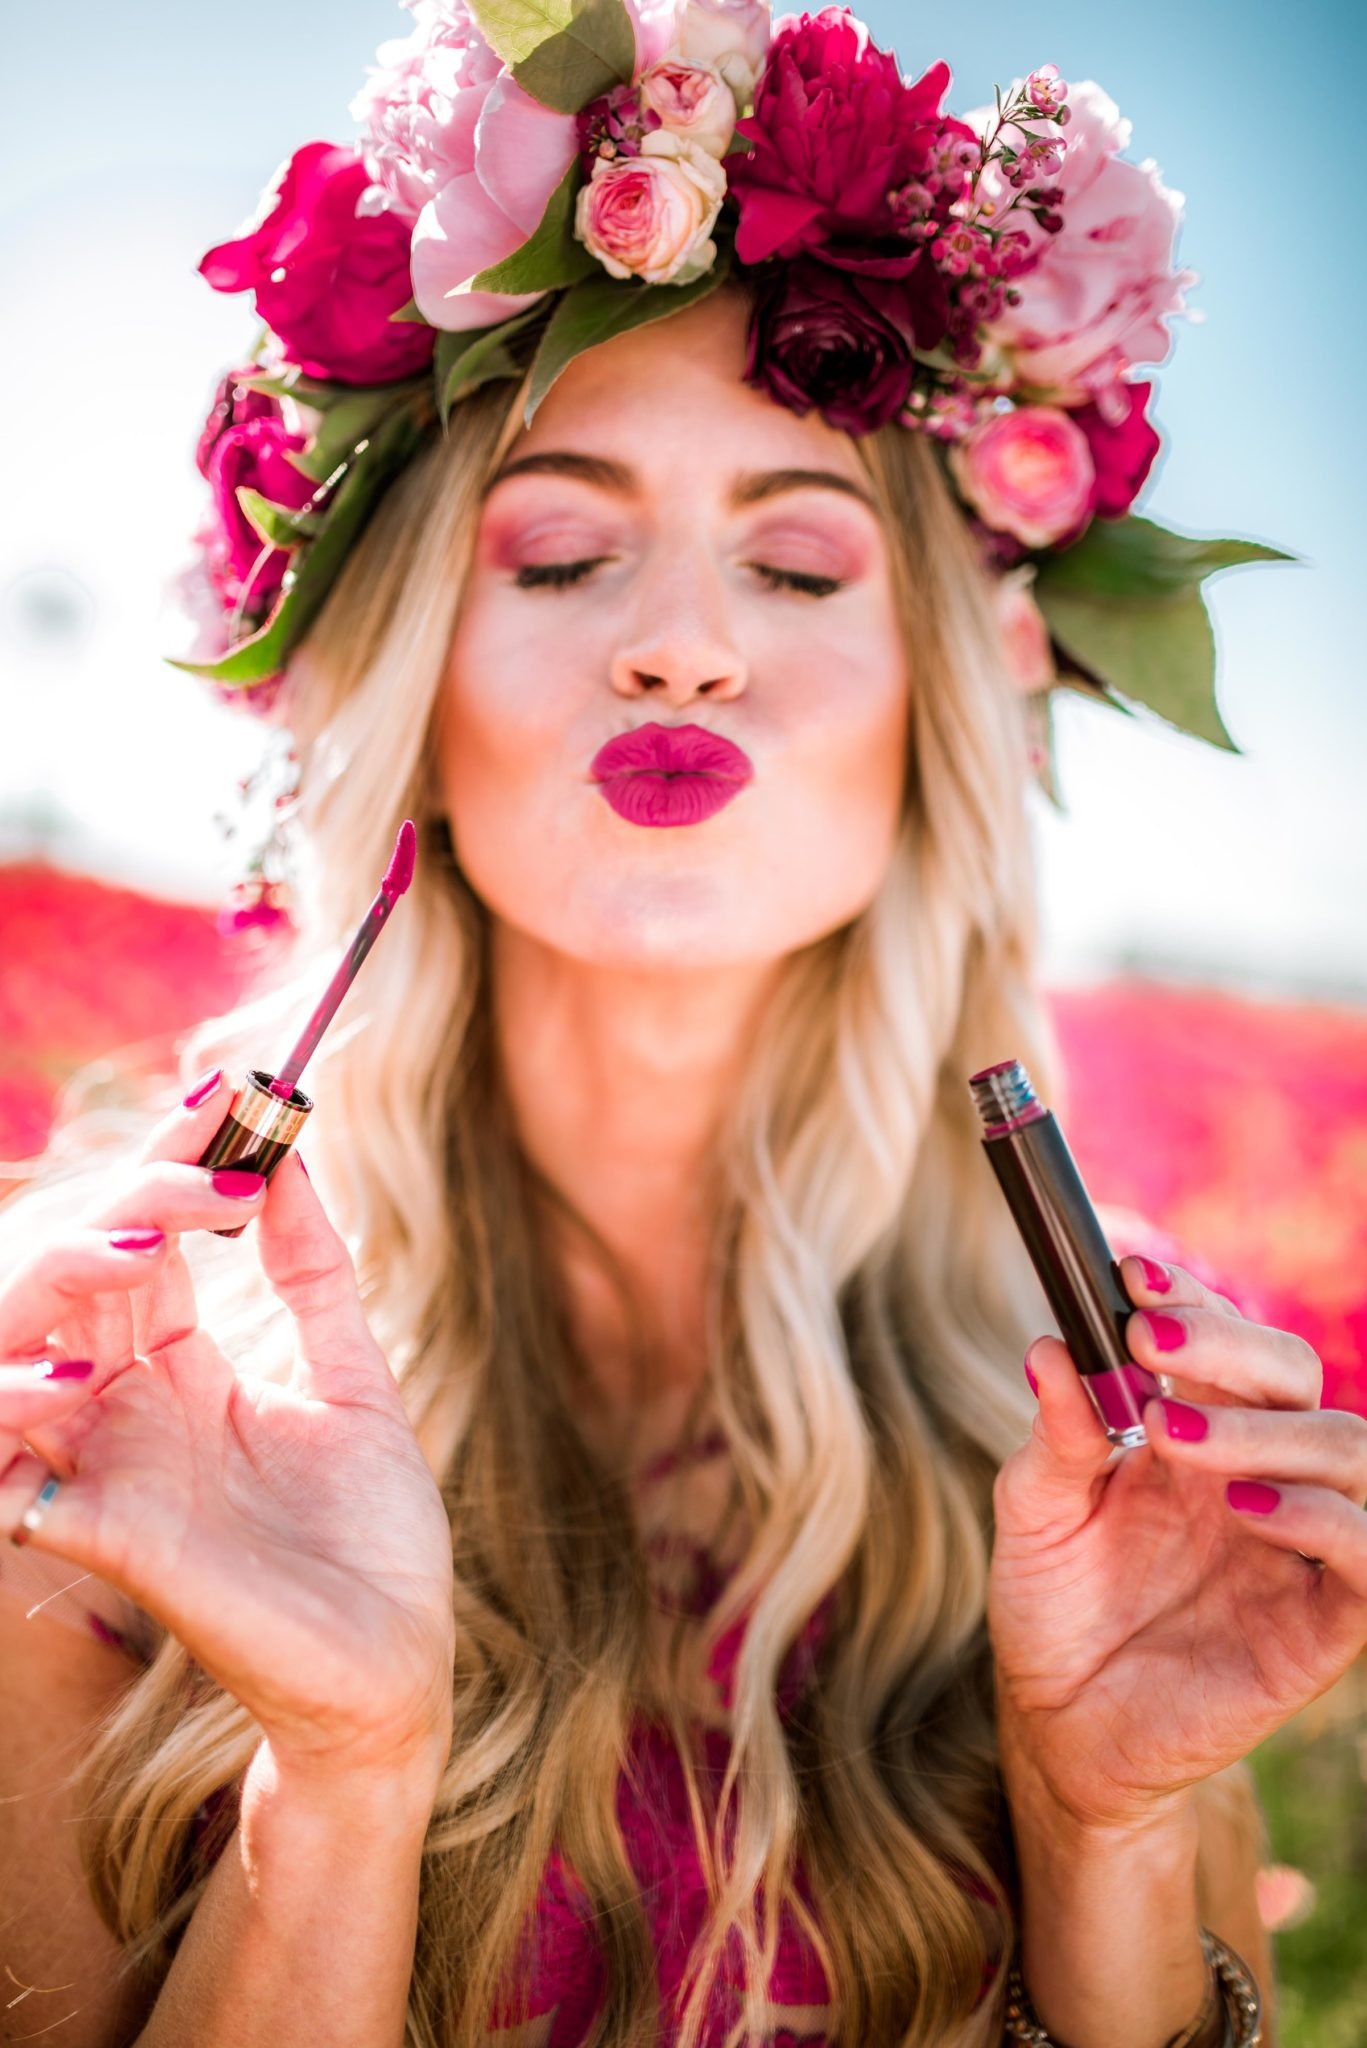 The best orchid makeup colors for spring.